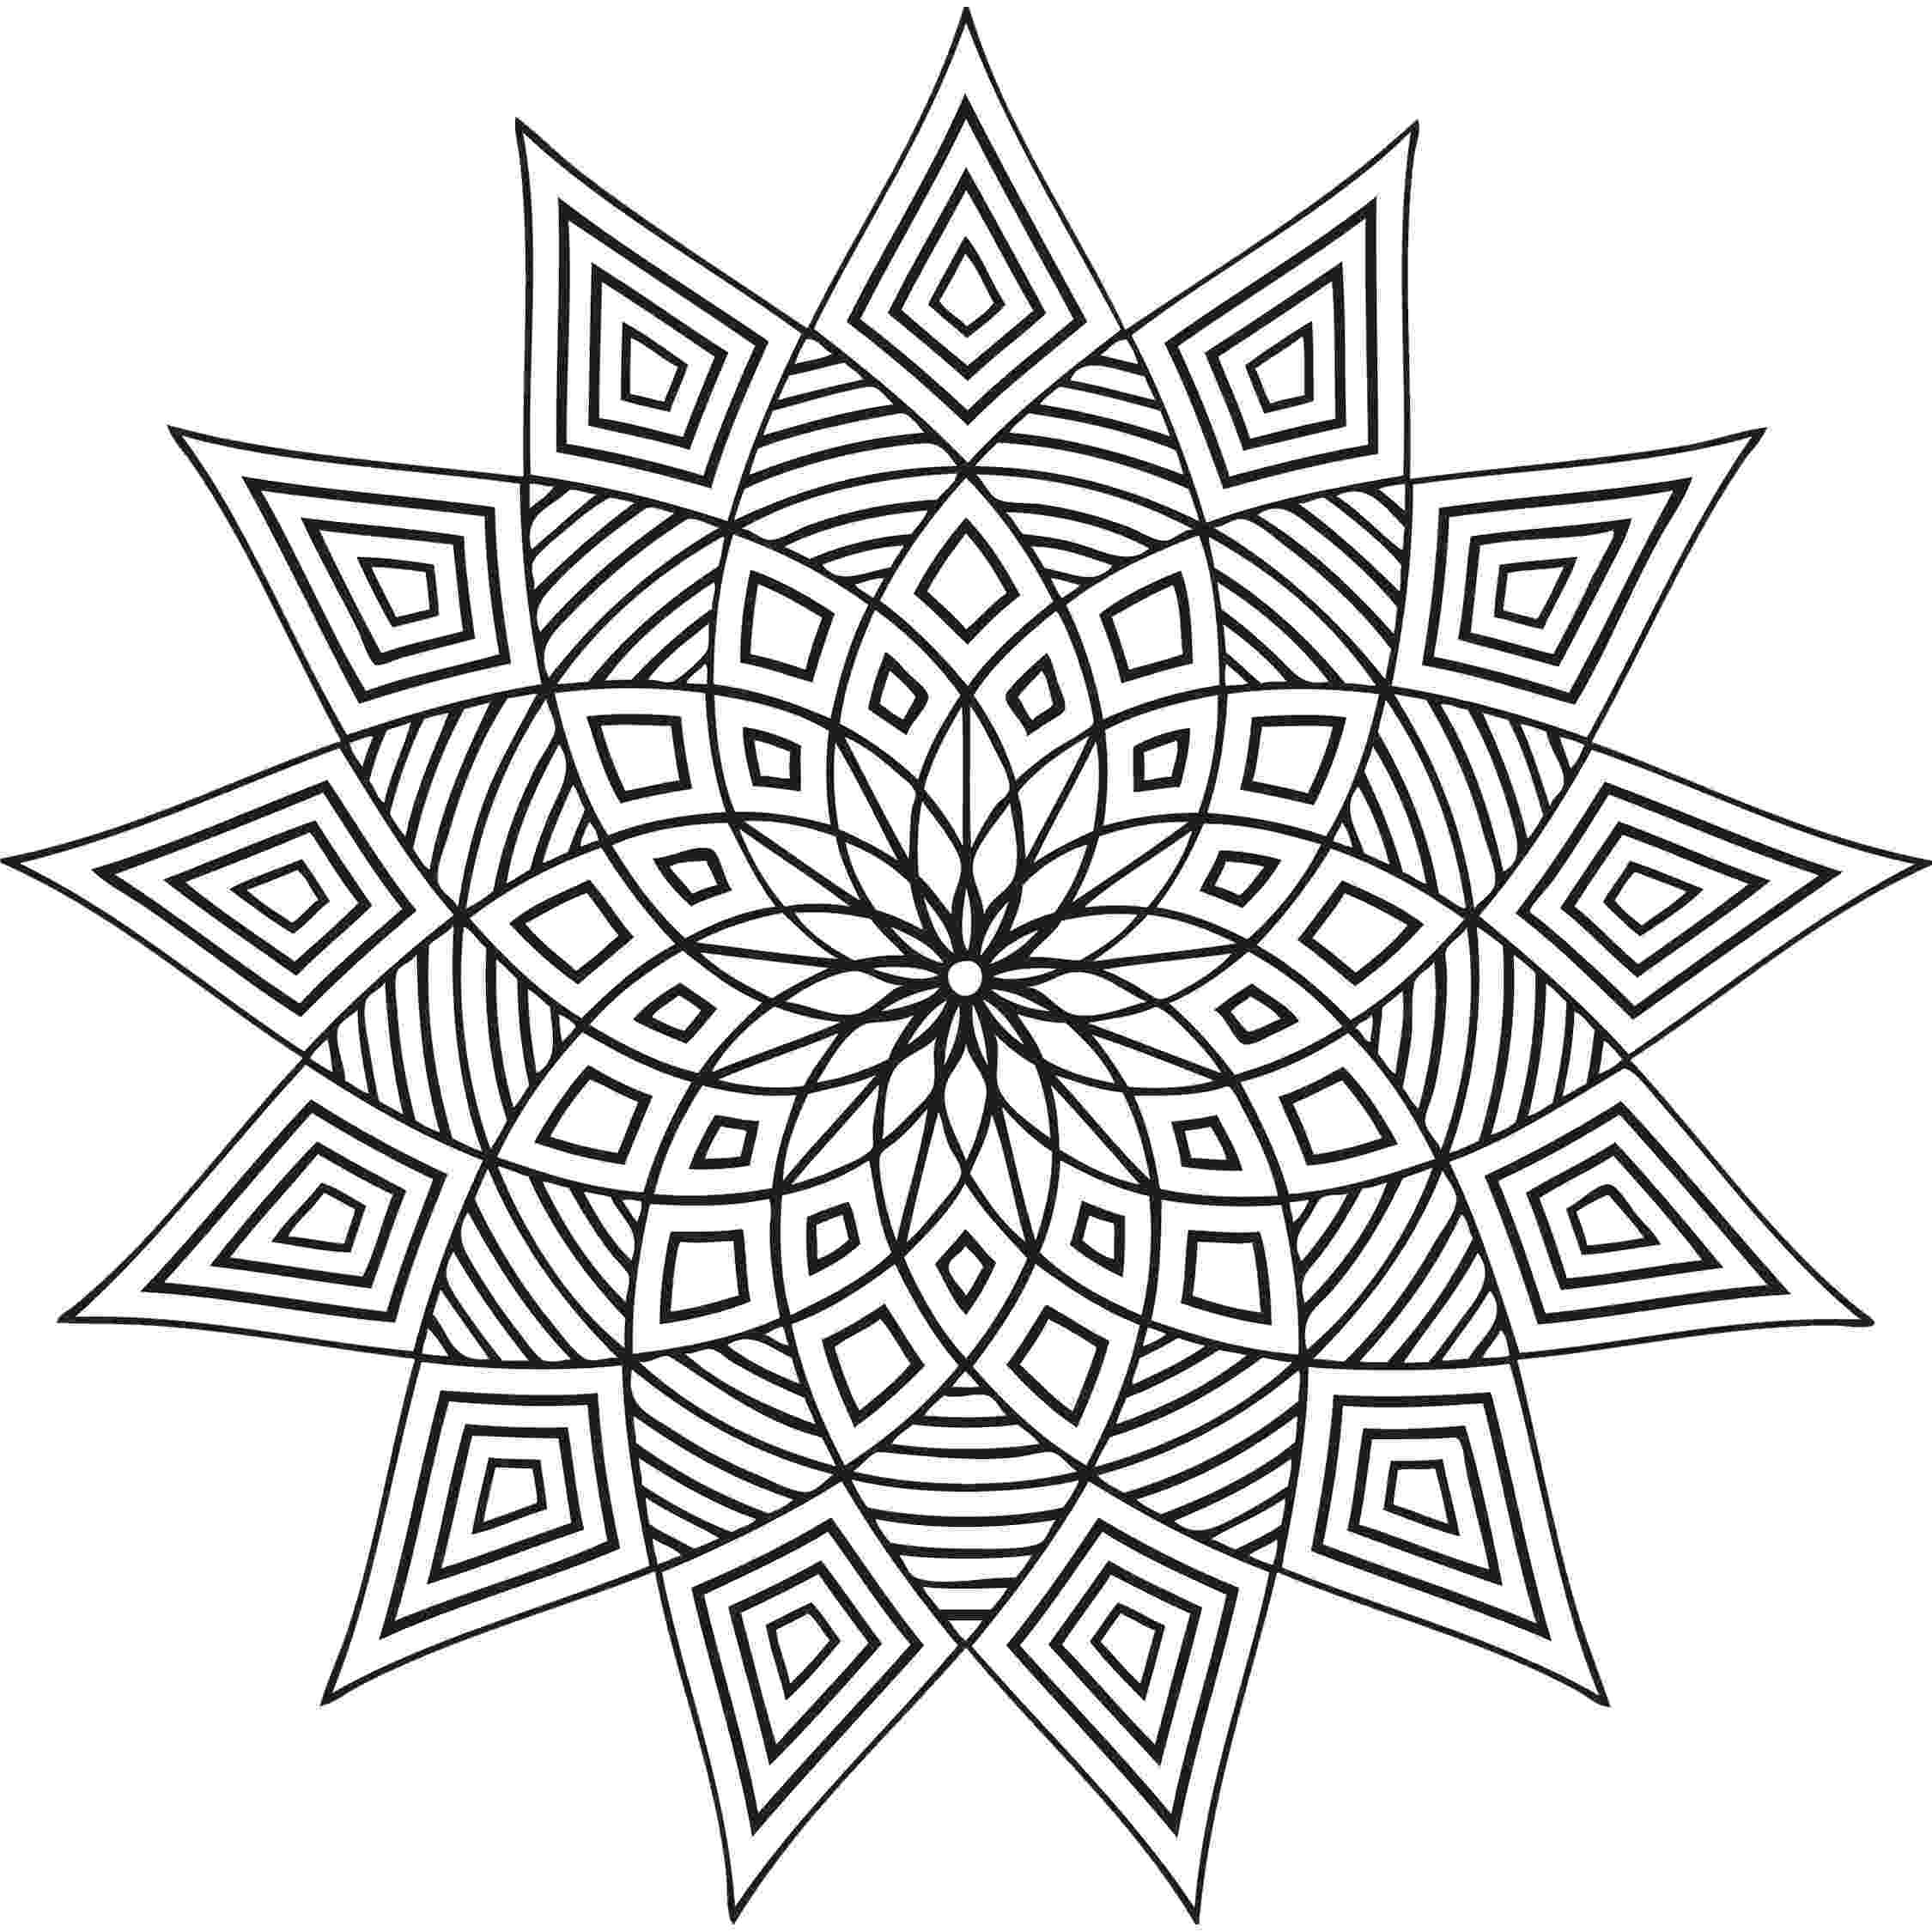 coloring pages for adults patterns free printable geometric coloring pages for adults patterns coloring for pages adults